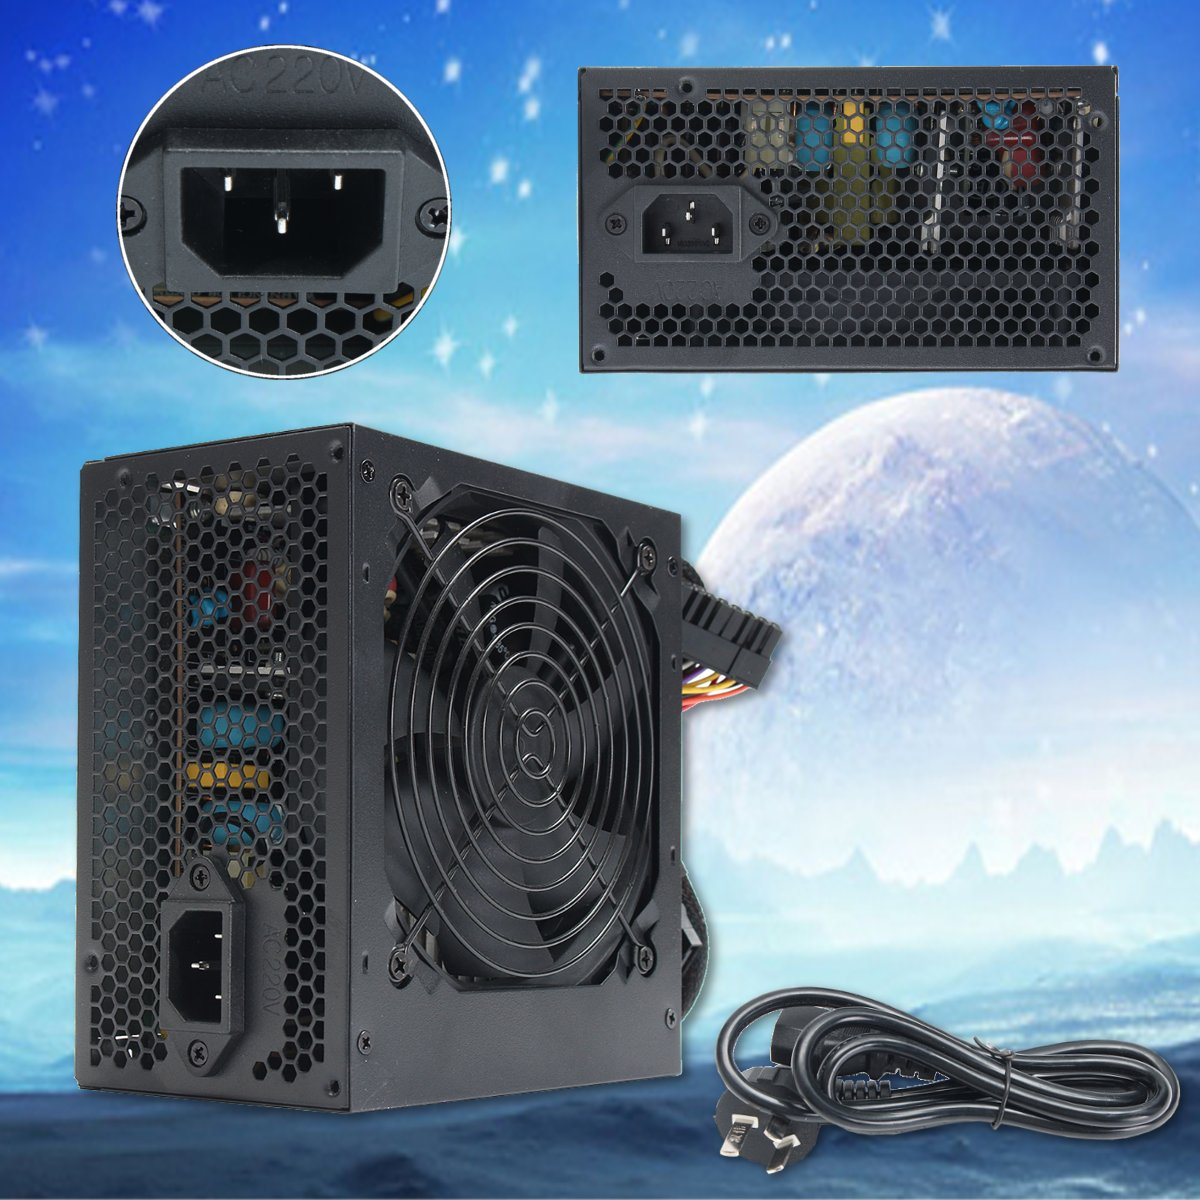 350W 650W Peak- PSU ATX 12V Gaming PC Power Supply 24Pin / Molex / Sata 12CM Fan Computer Power Supply For BTC